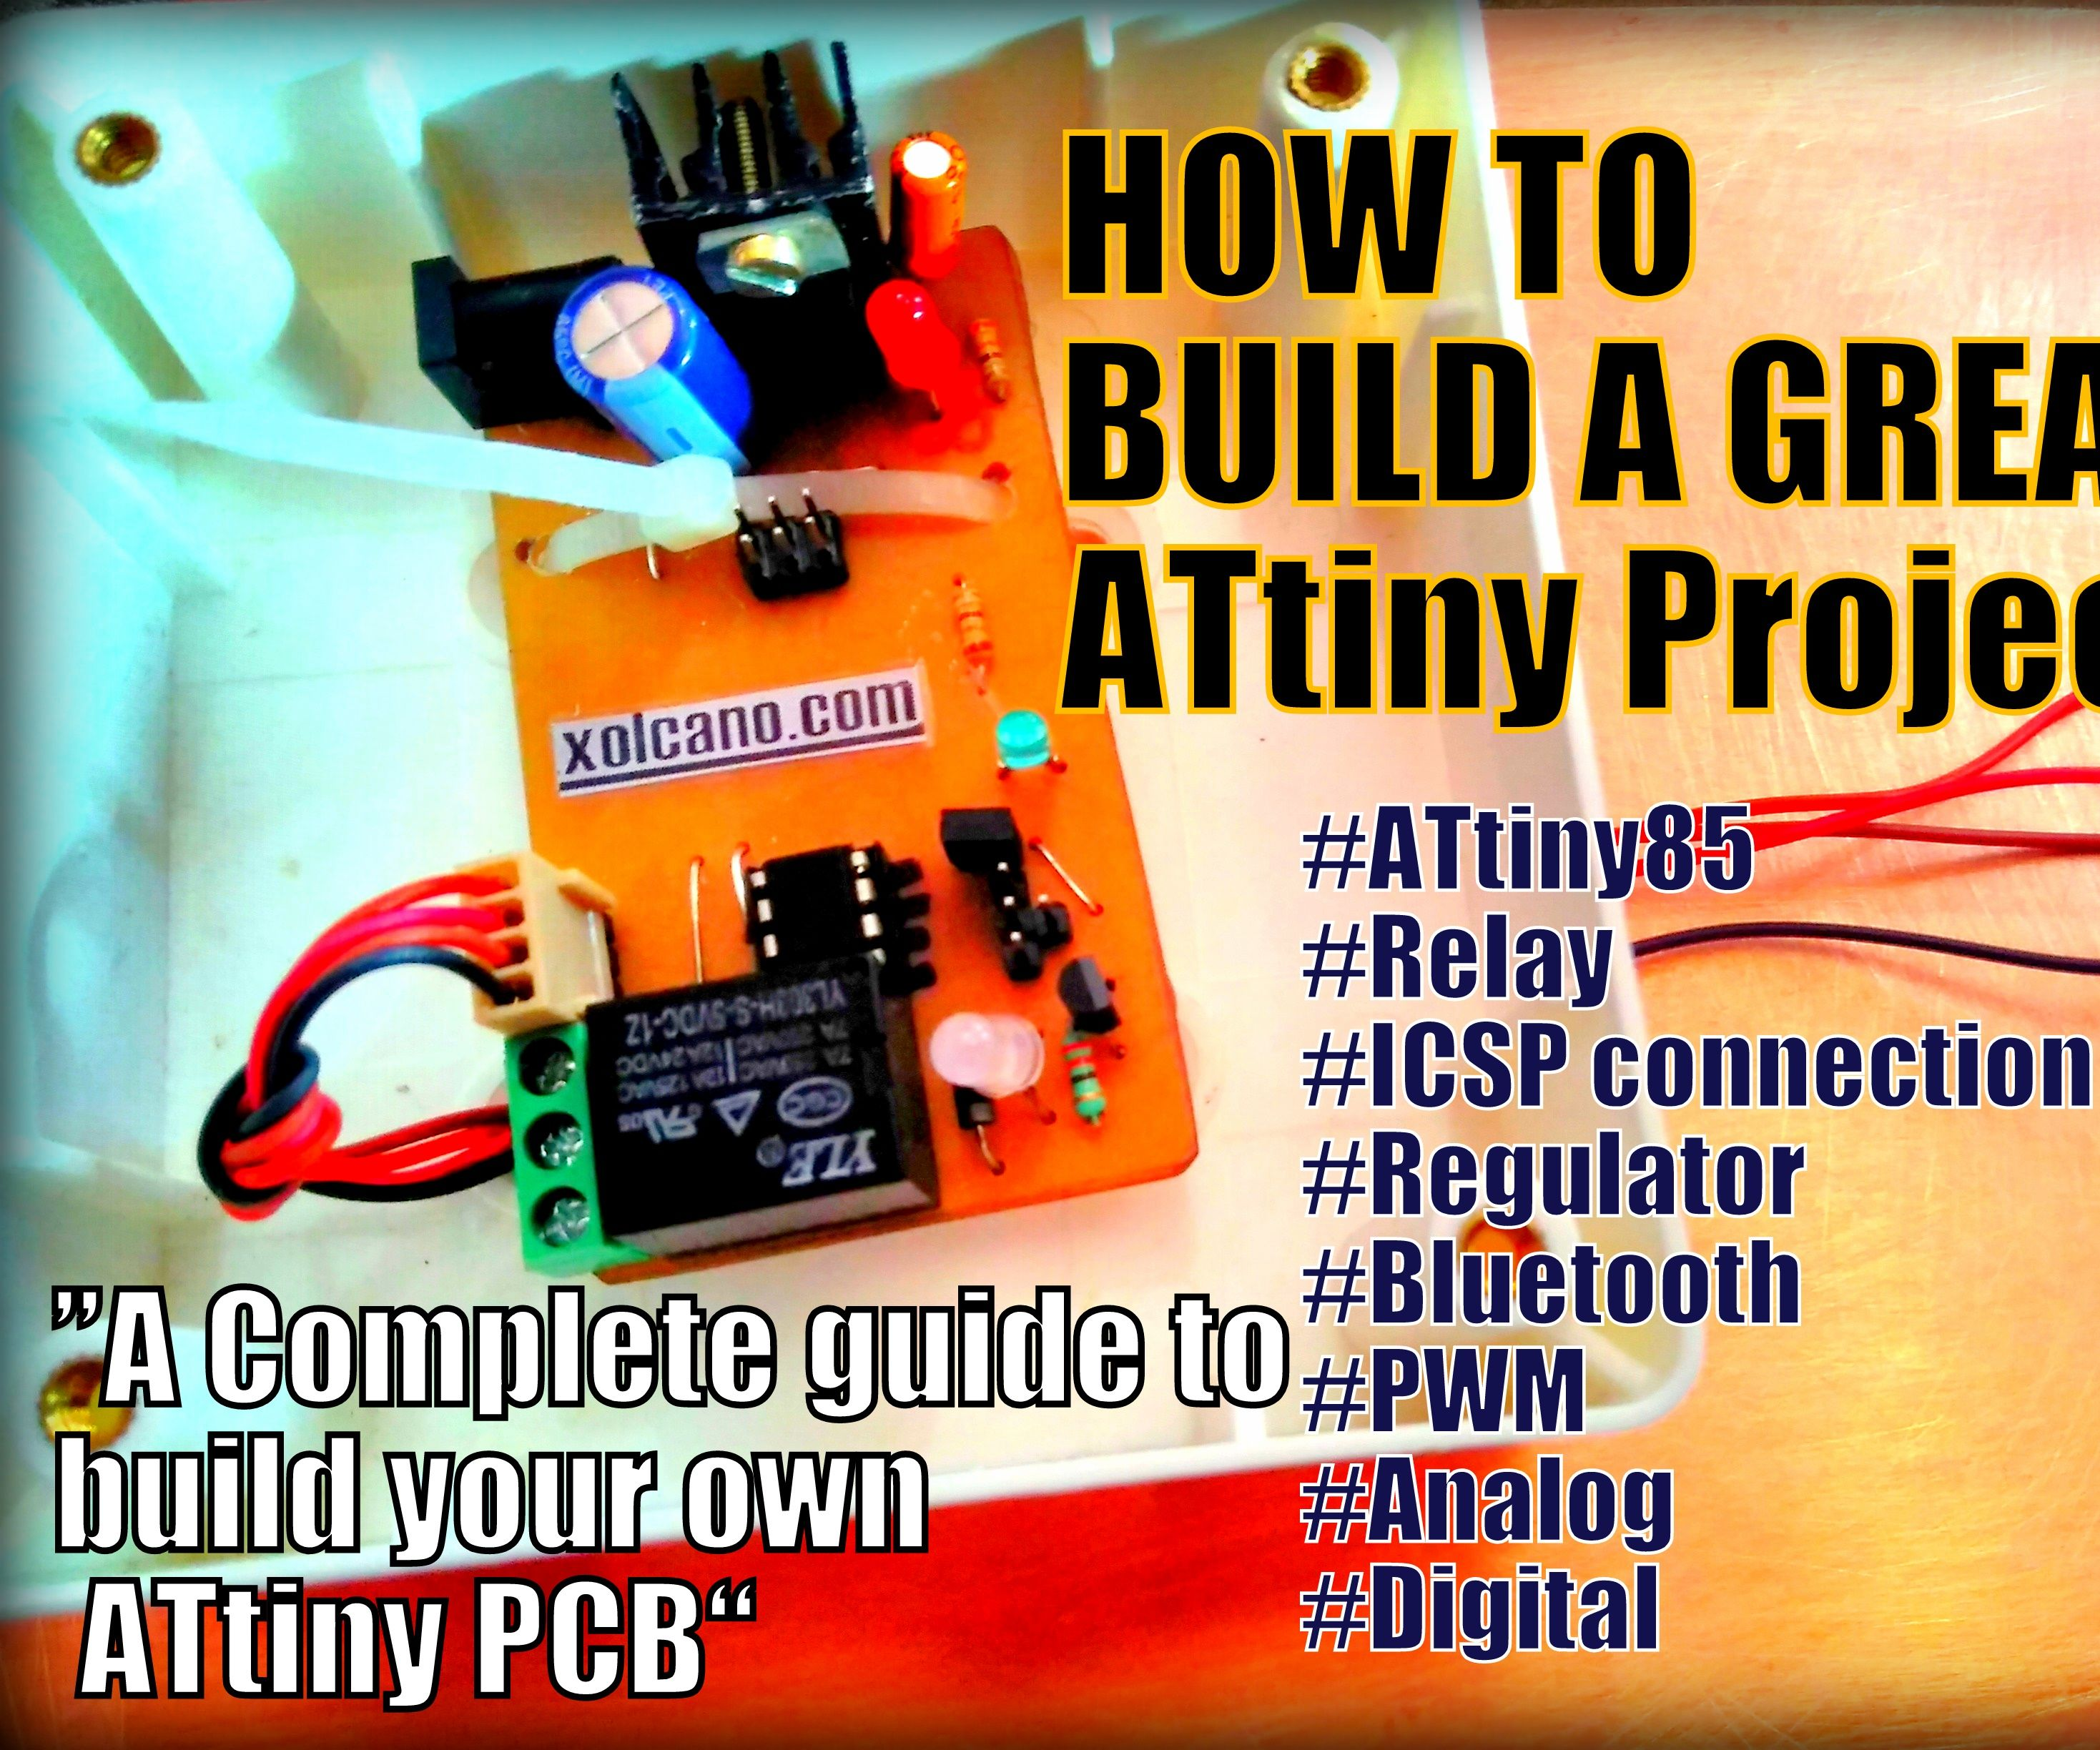 A Complete Guide to Build Your own ATtiny85 Project PCB with Relay and Interfacing HC05 Bluetooth Module to it